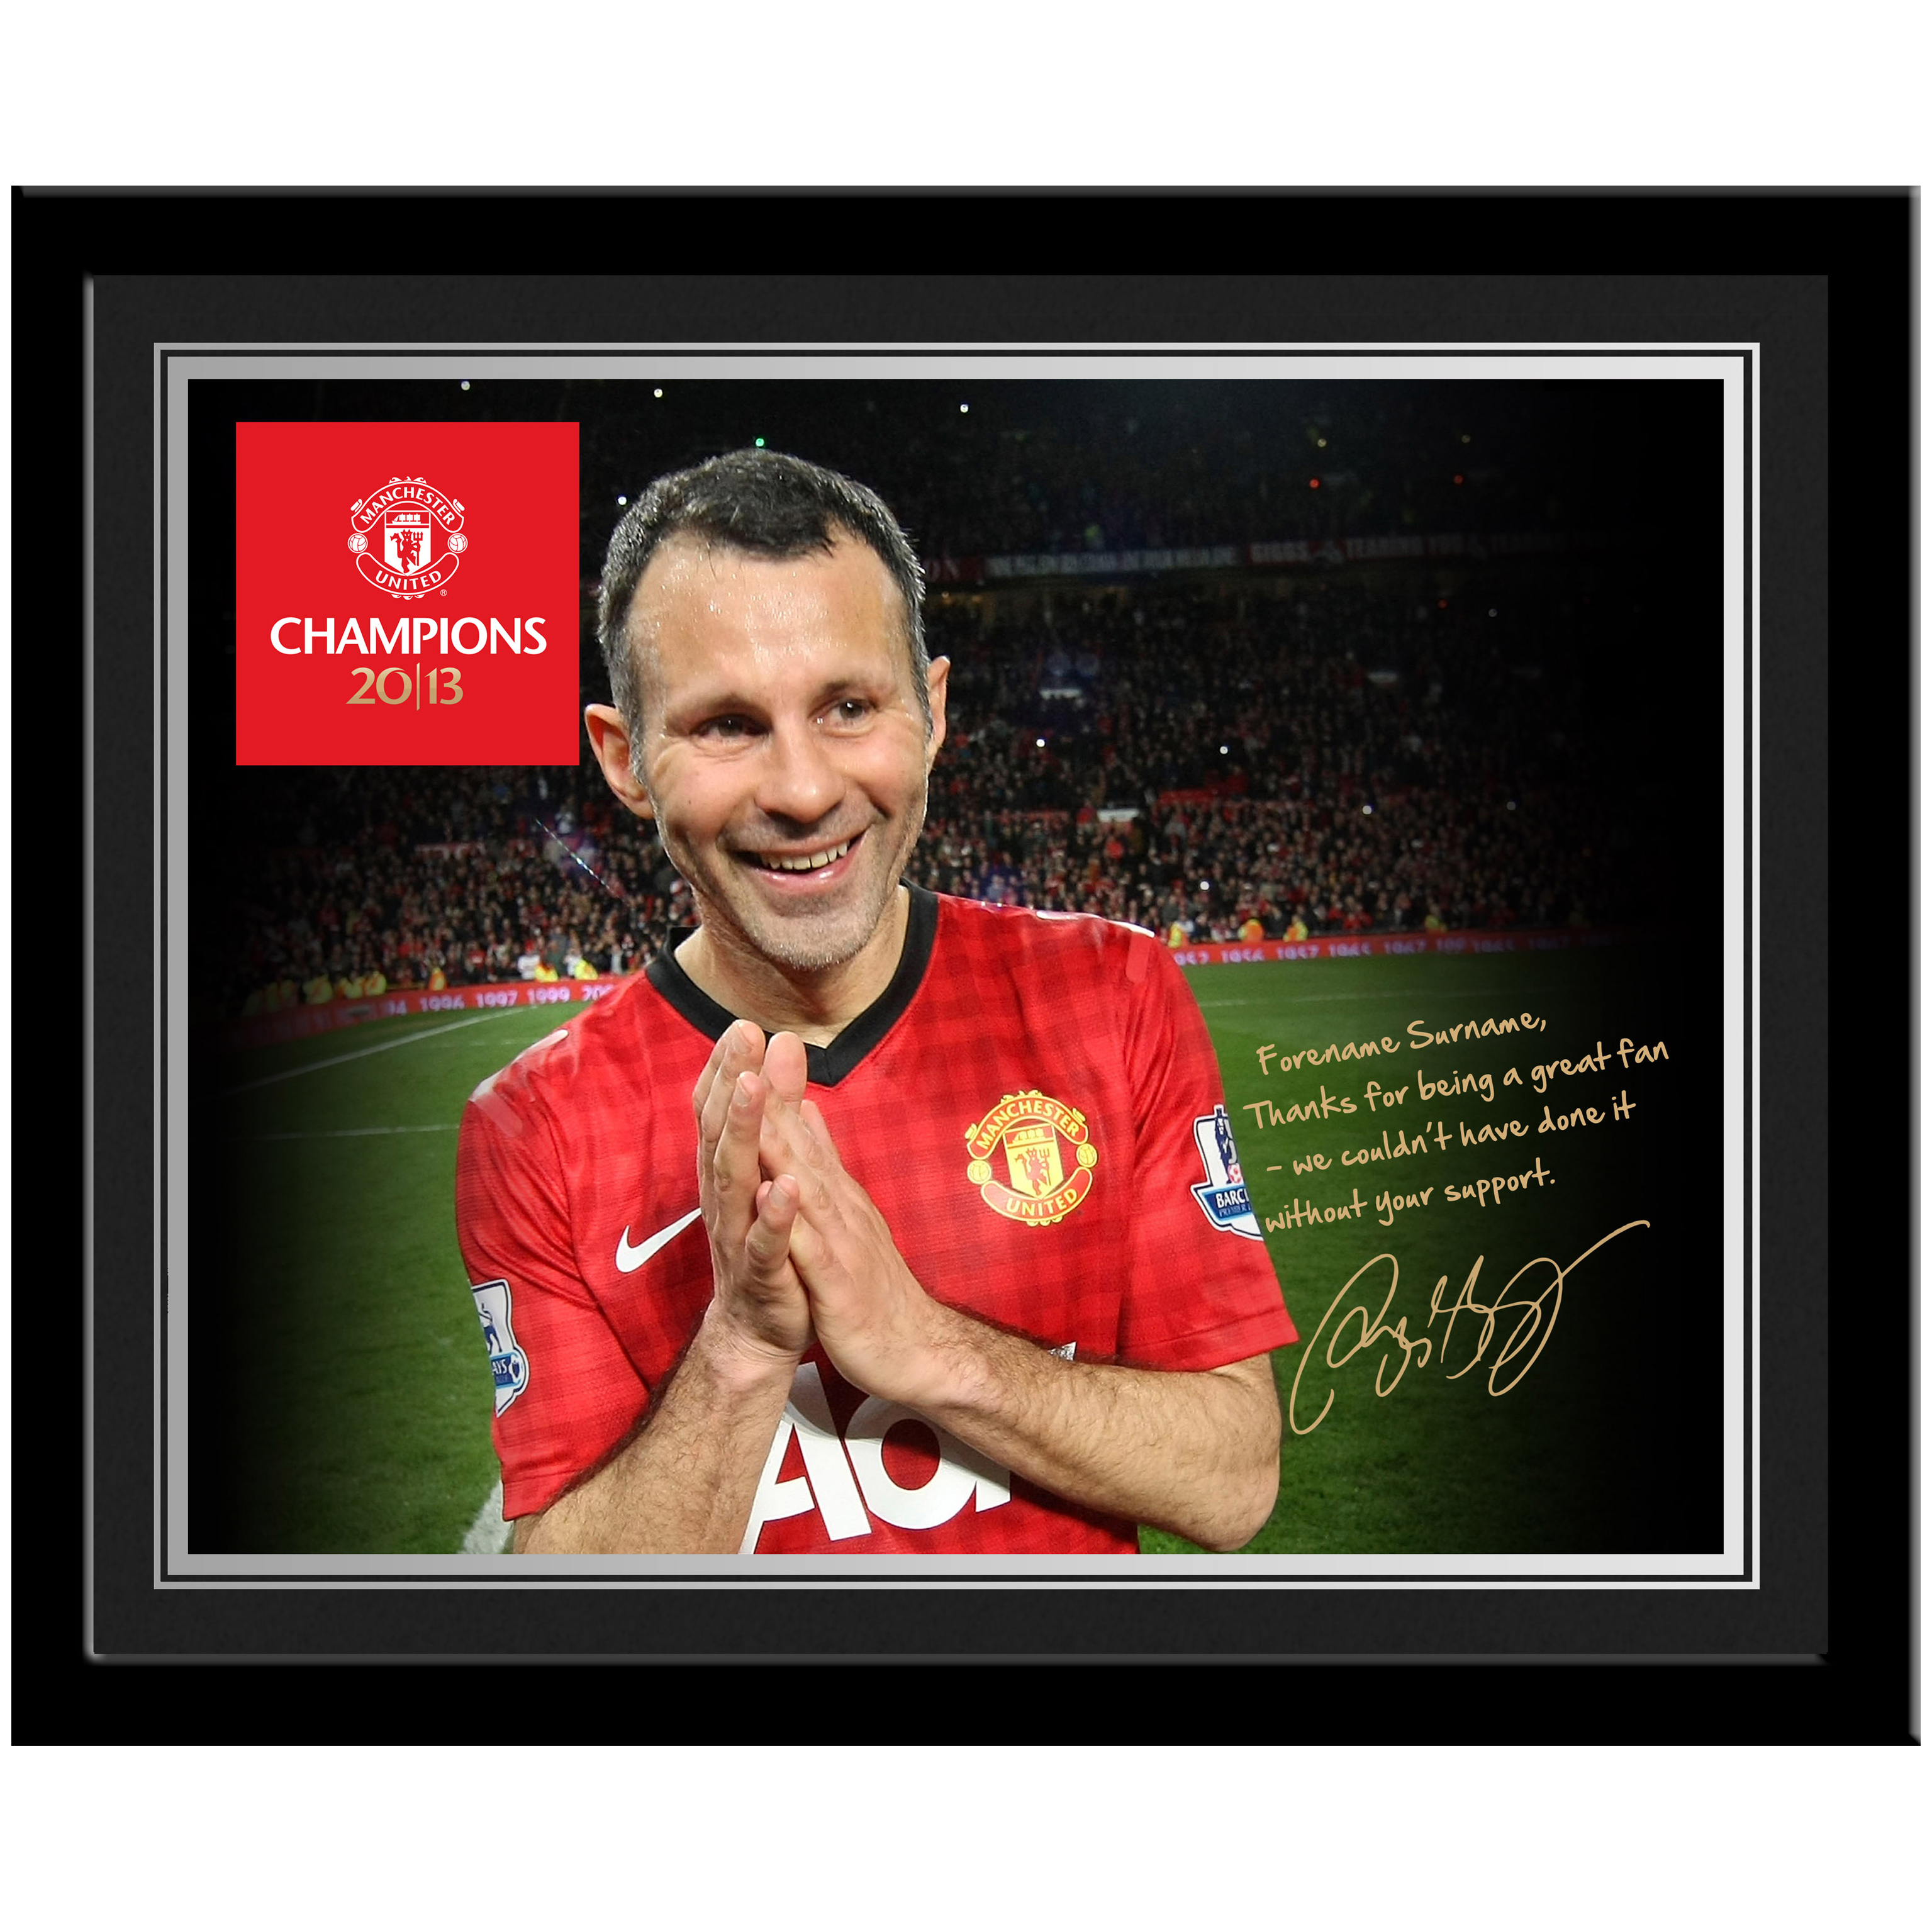 Manchester United Personalised Champions 2013 Player Photo Framed - Giggs